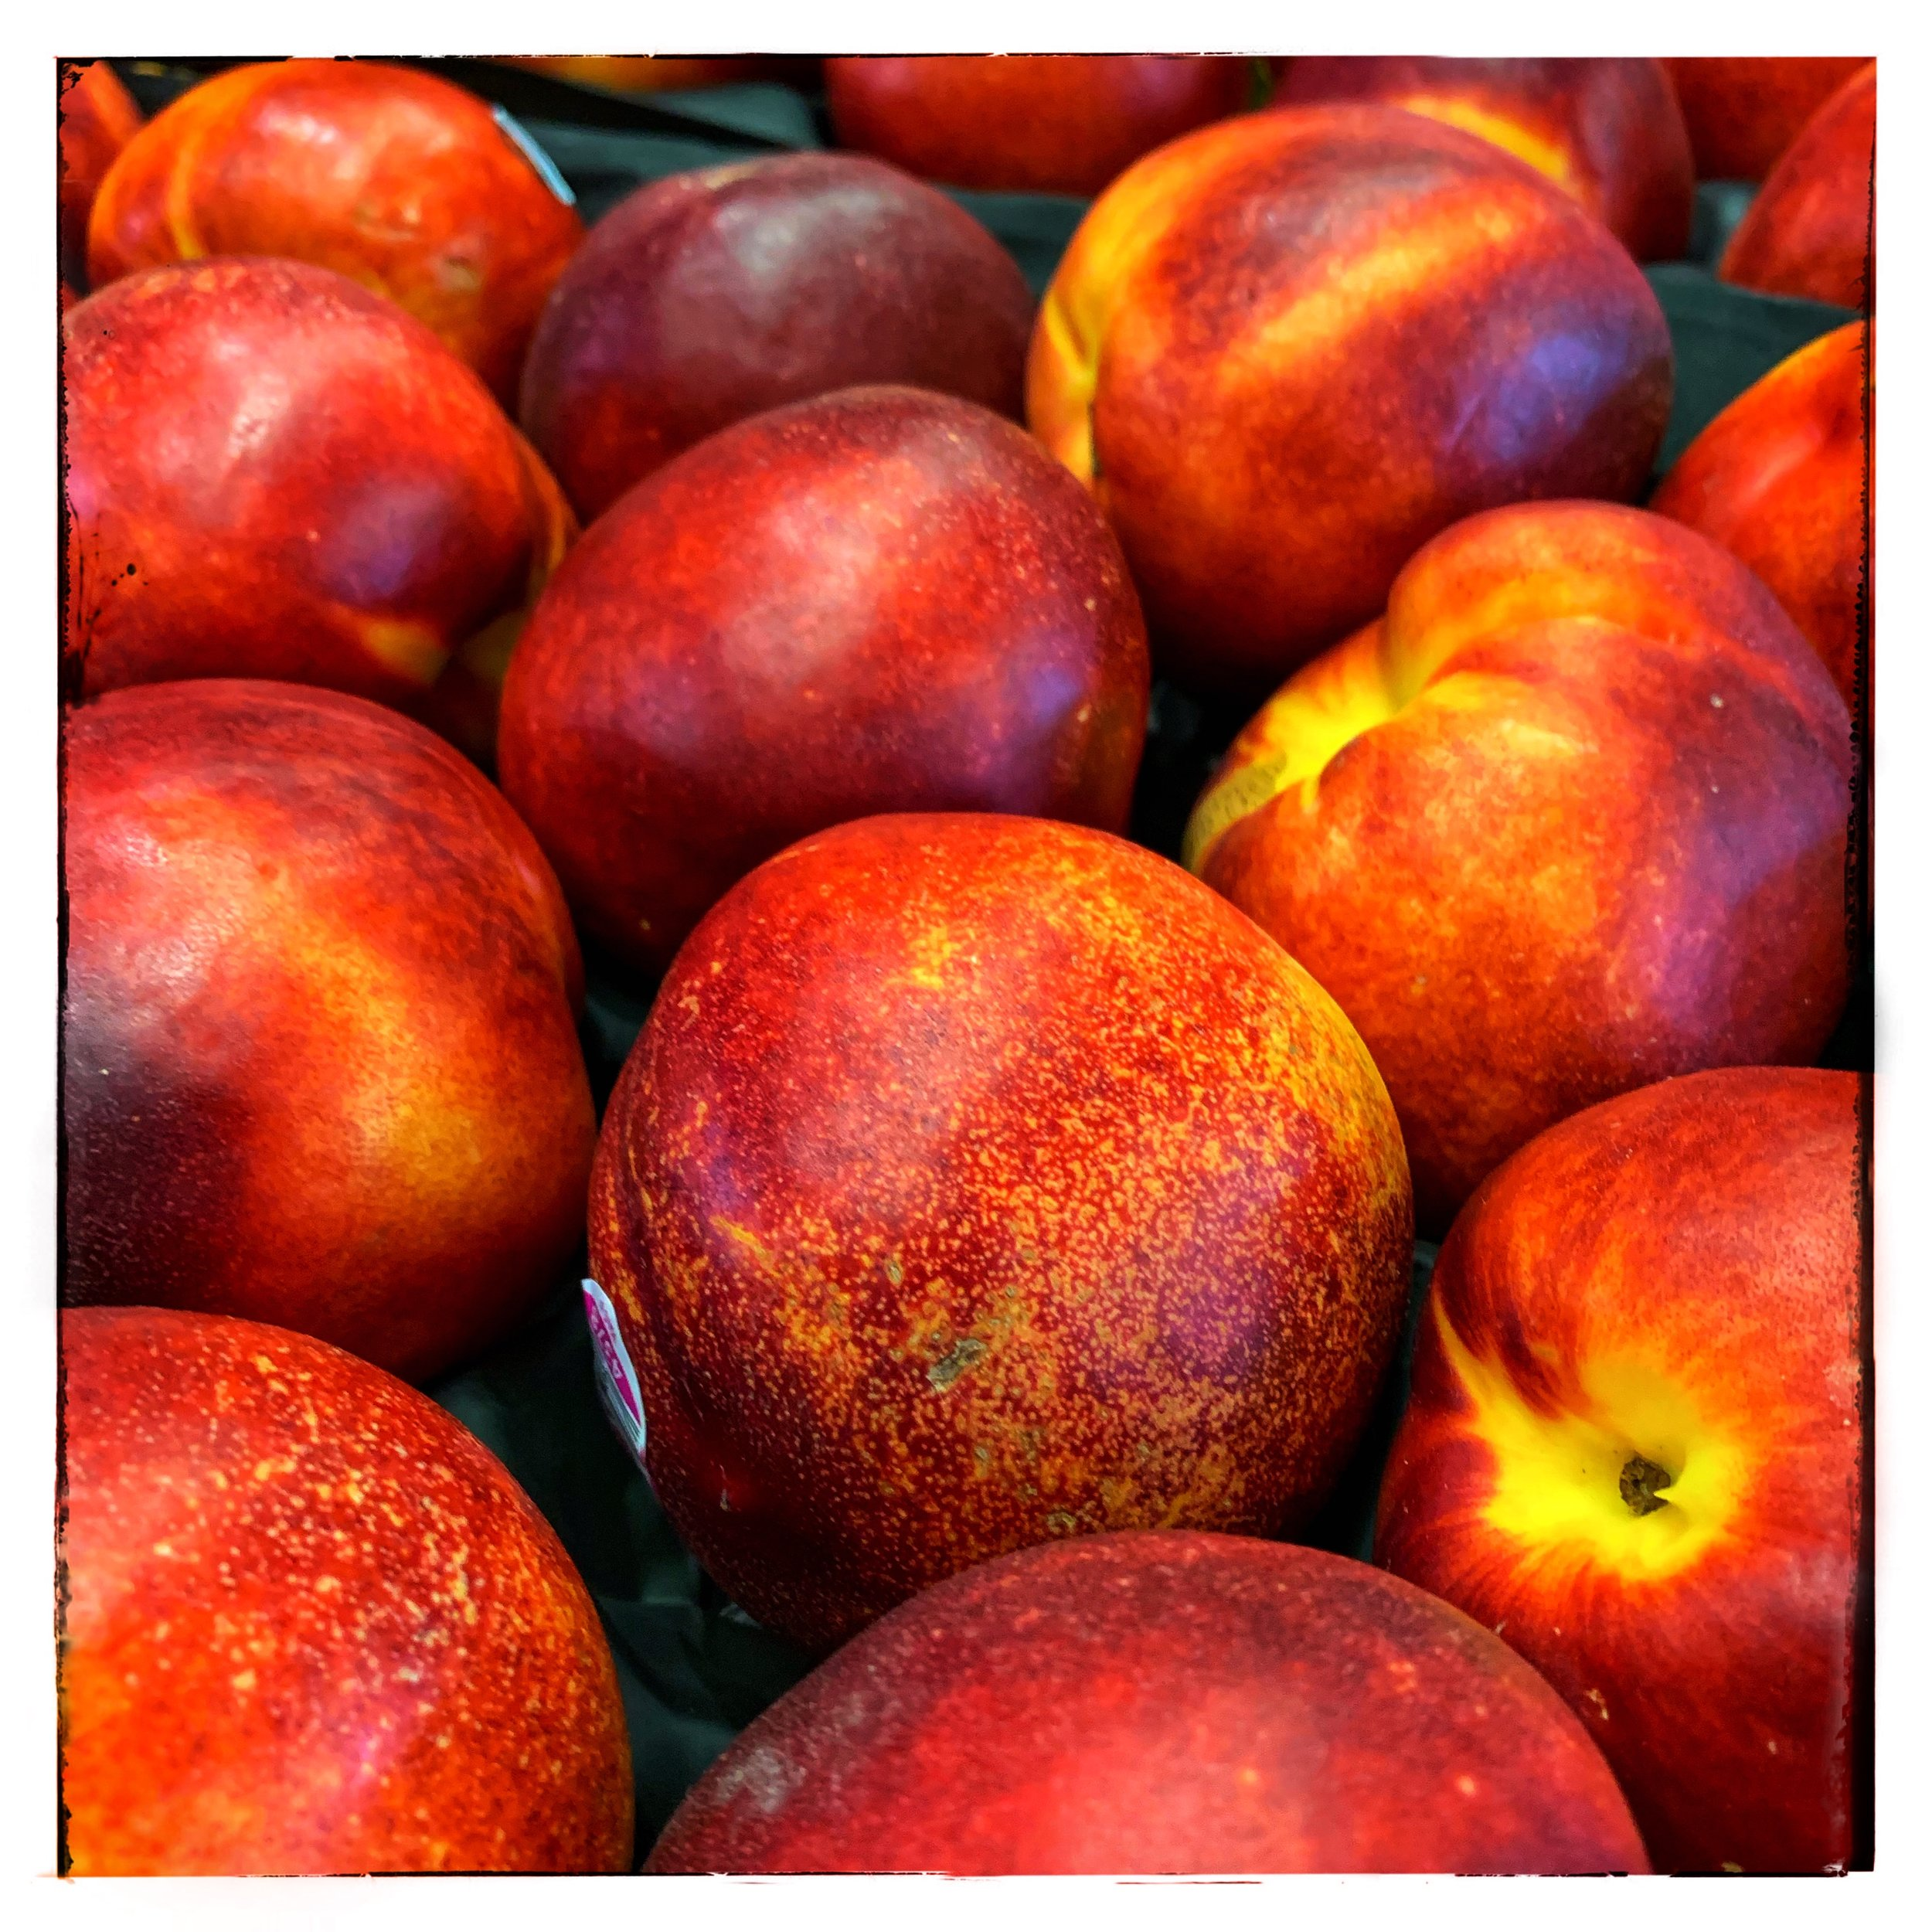 Tree-ripened nectarines and peaches on special this week at Russo's!